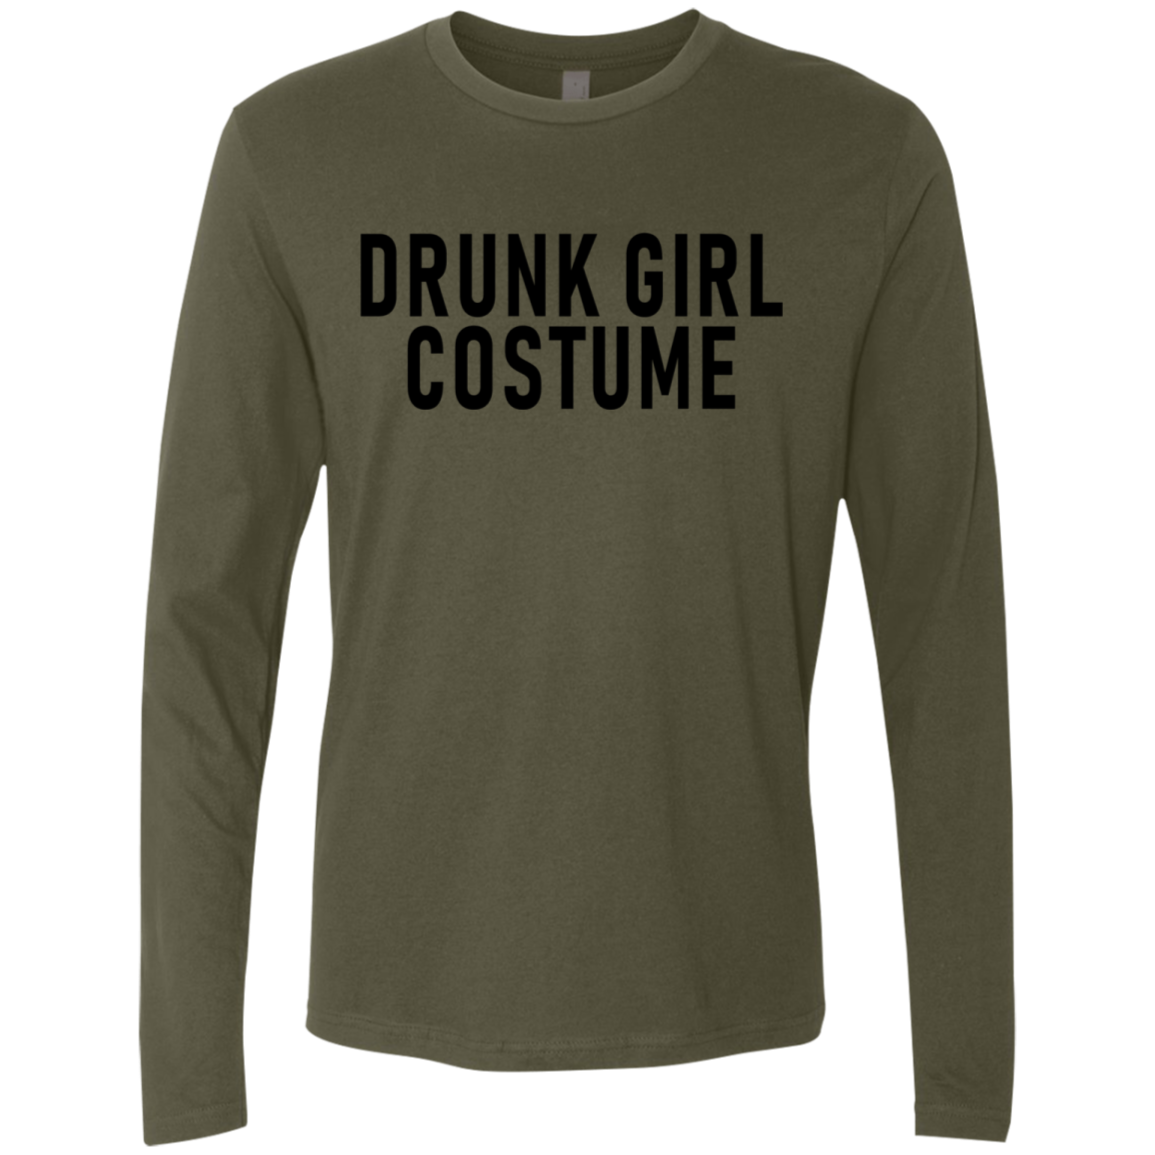 Drunk Girl Costume Men's Long Sleeve Tee